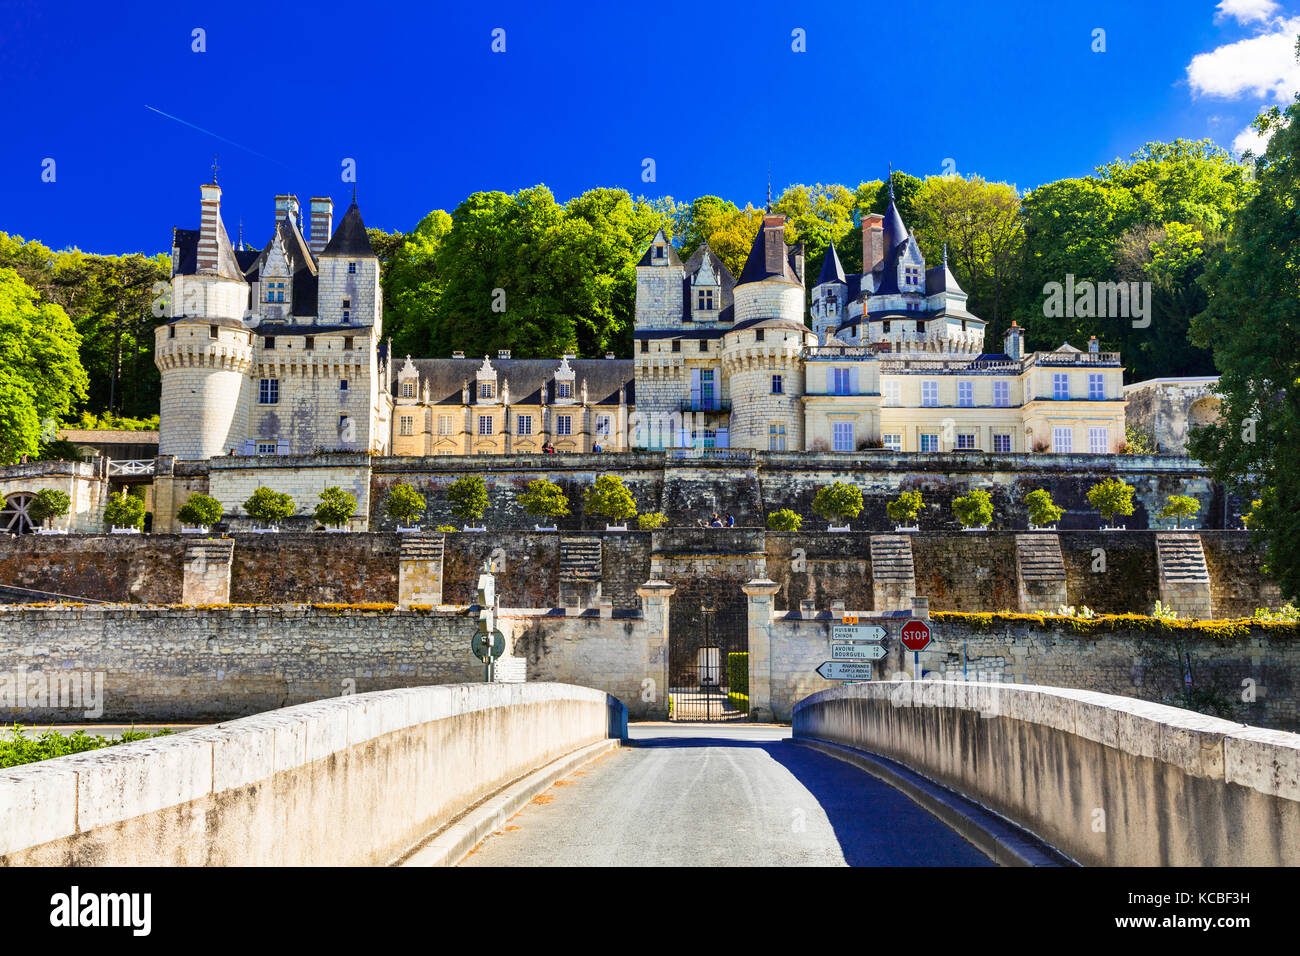 Magnificent Chateau d' Usse',Loire valley,France. - Stock Image